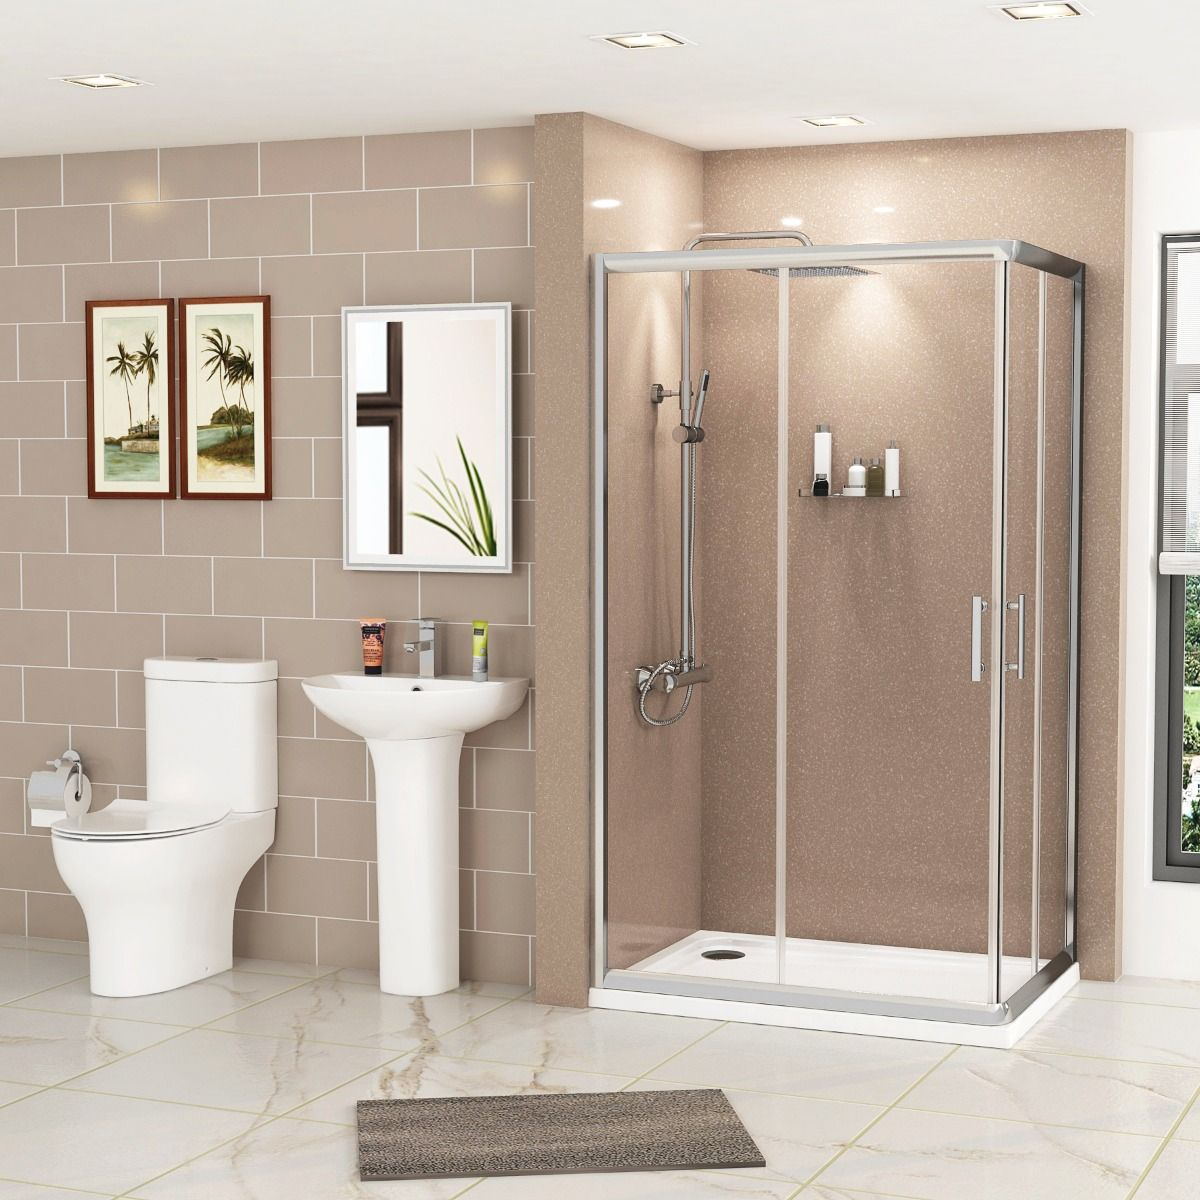 1100 X 1100mm Corner Entry Shower Enclosure Suite With Breeze Close Coupled Toilet Basin In 2020 Close Coupled Toilets Shower Enclosure Toilet Width